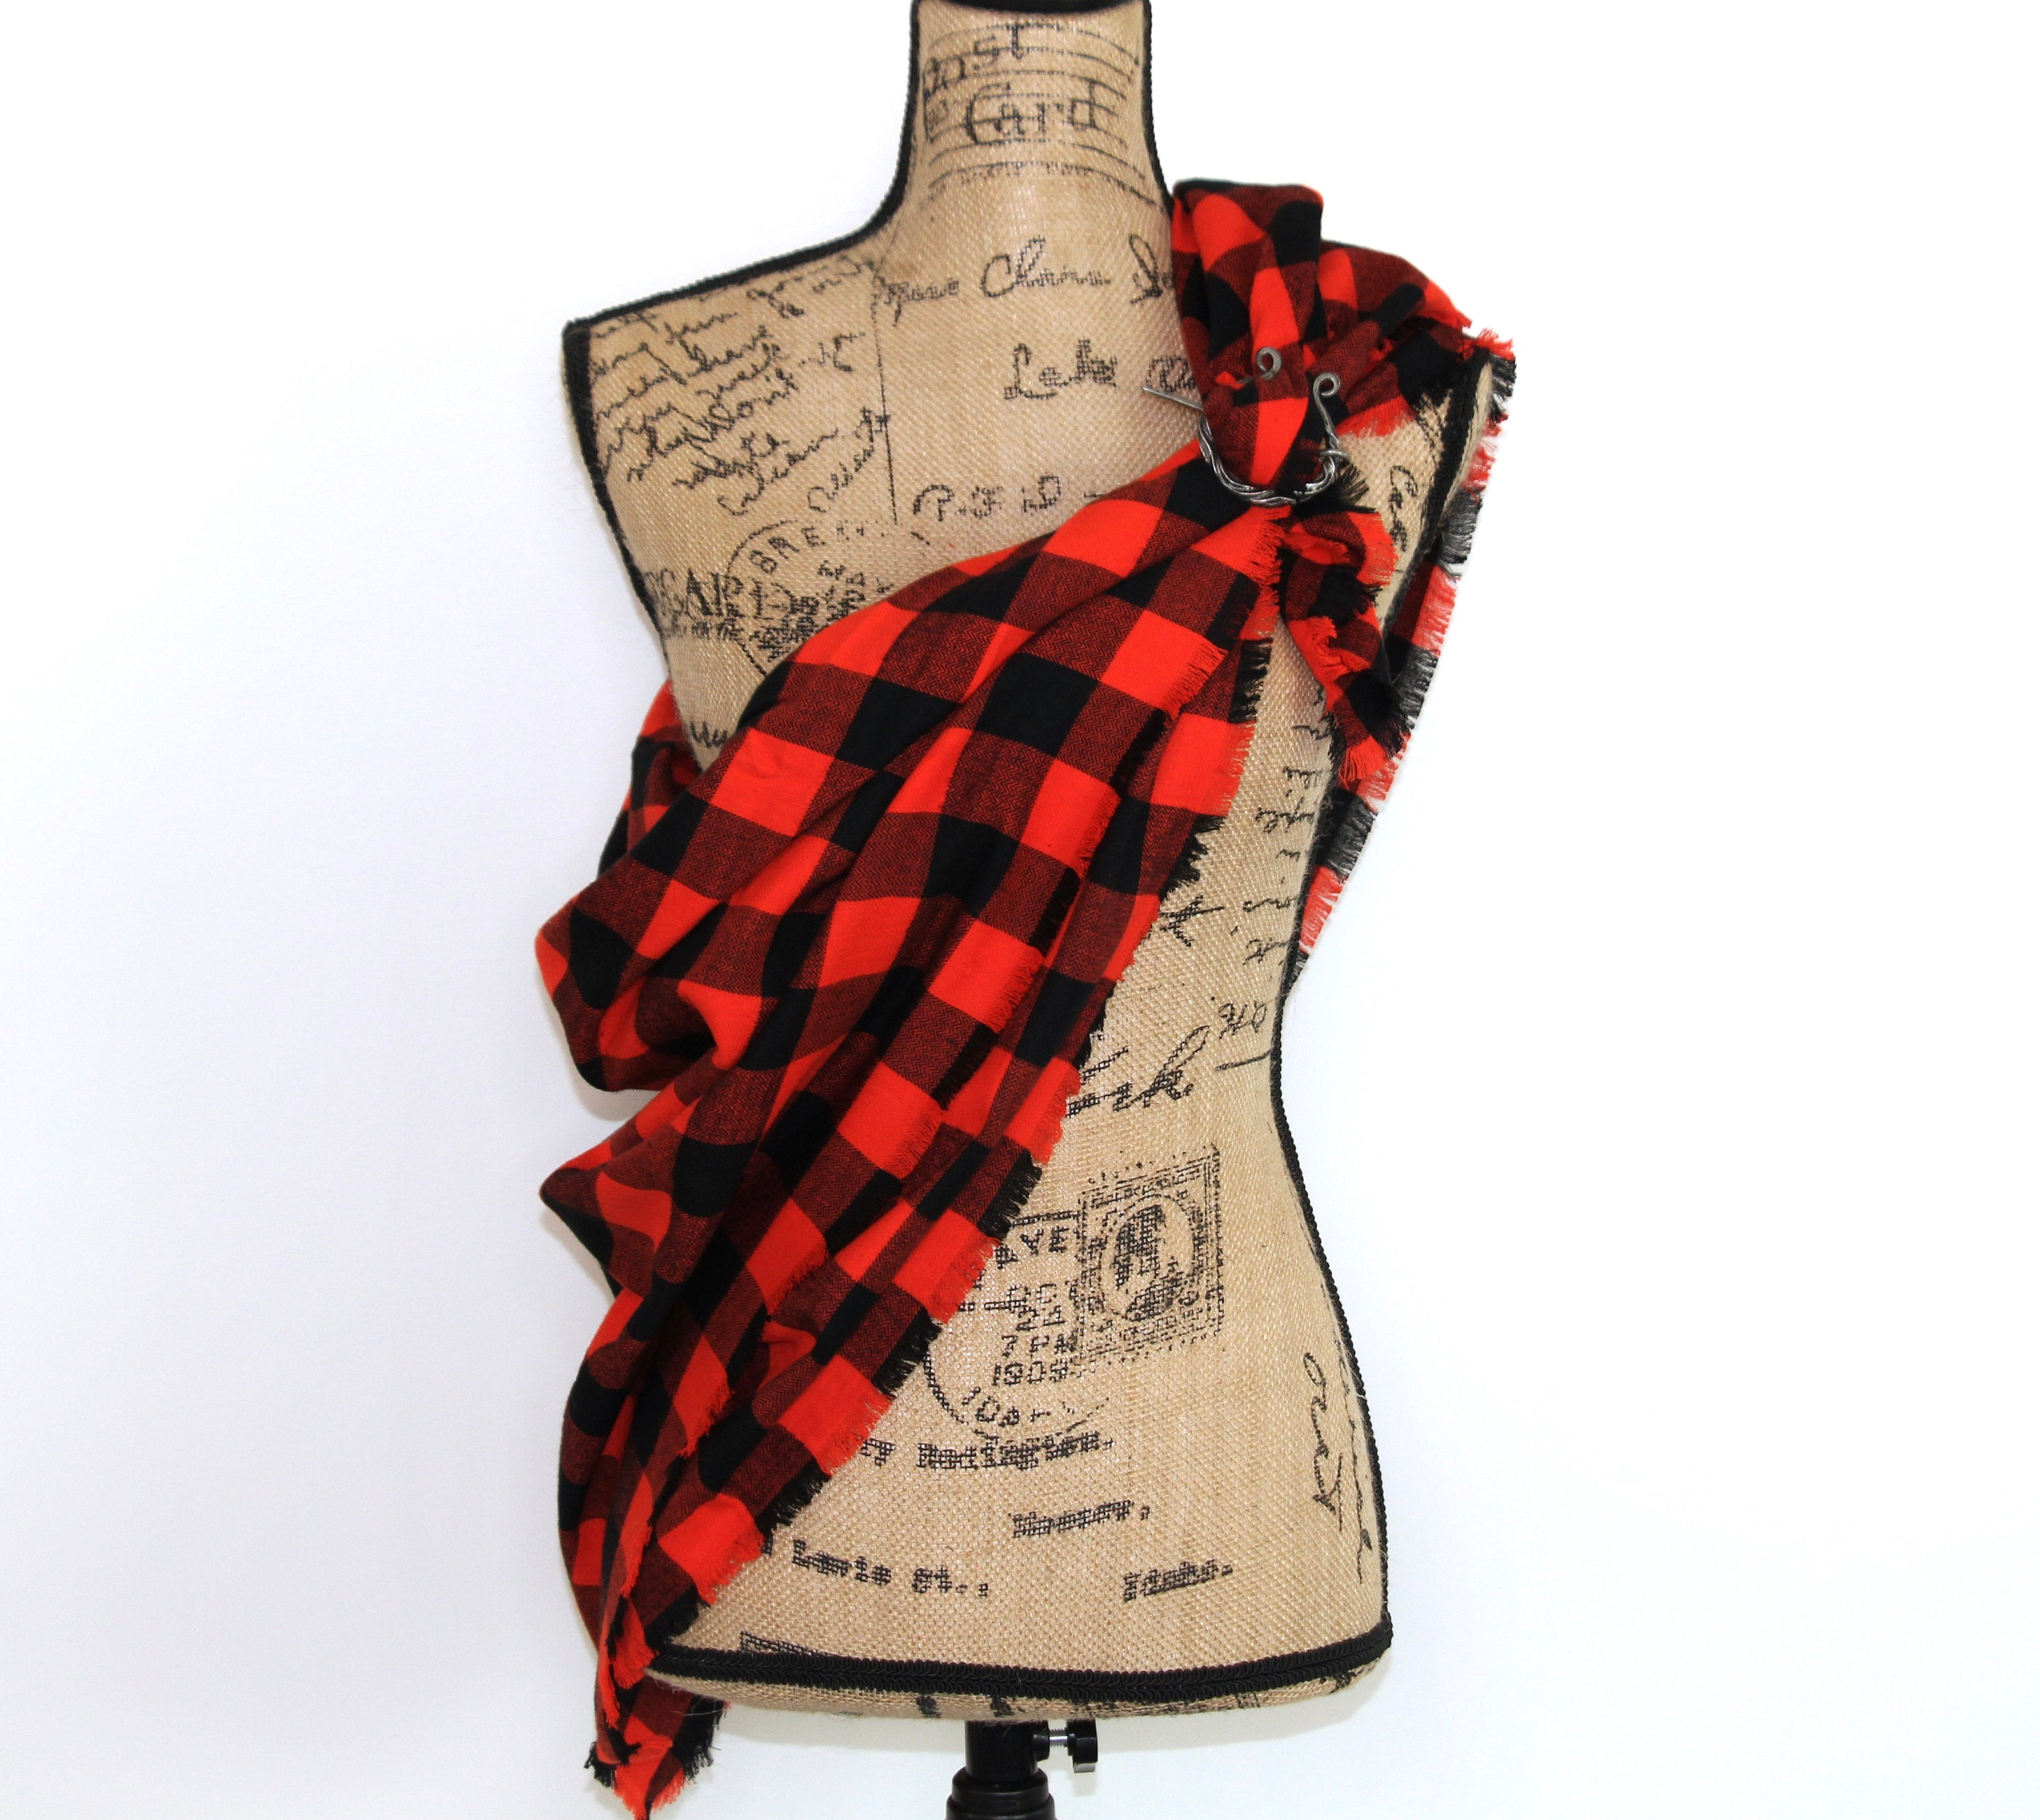 Orange and Black Lightweight Flannel Plaid Infinity or Blanket Scarf Giants Baseball Game Classic Buffalo Lumberjack Check Tartan Wrap